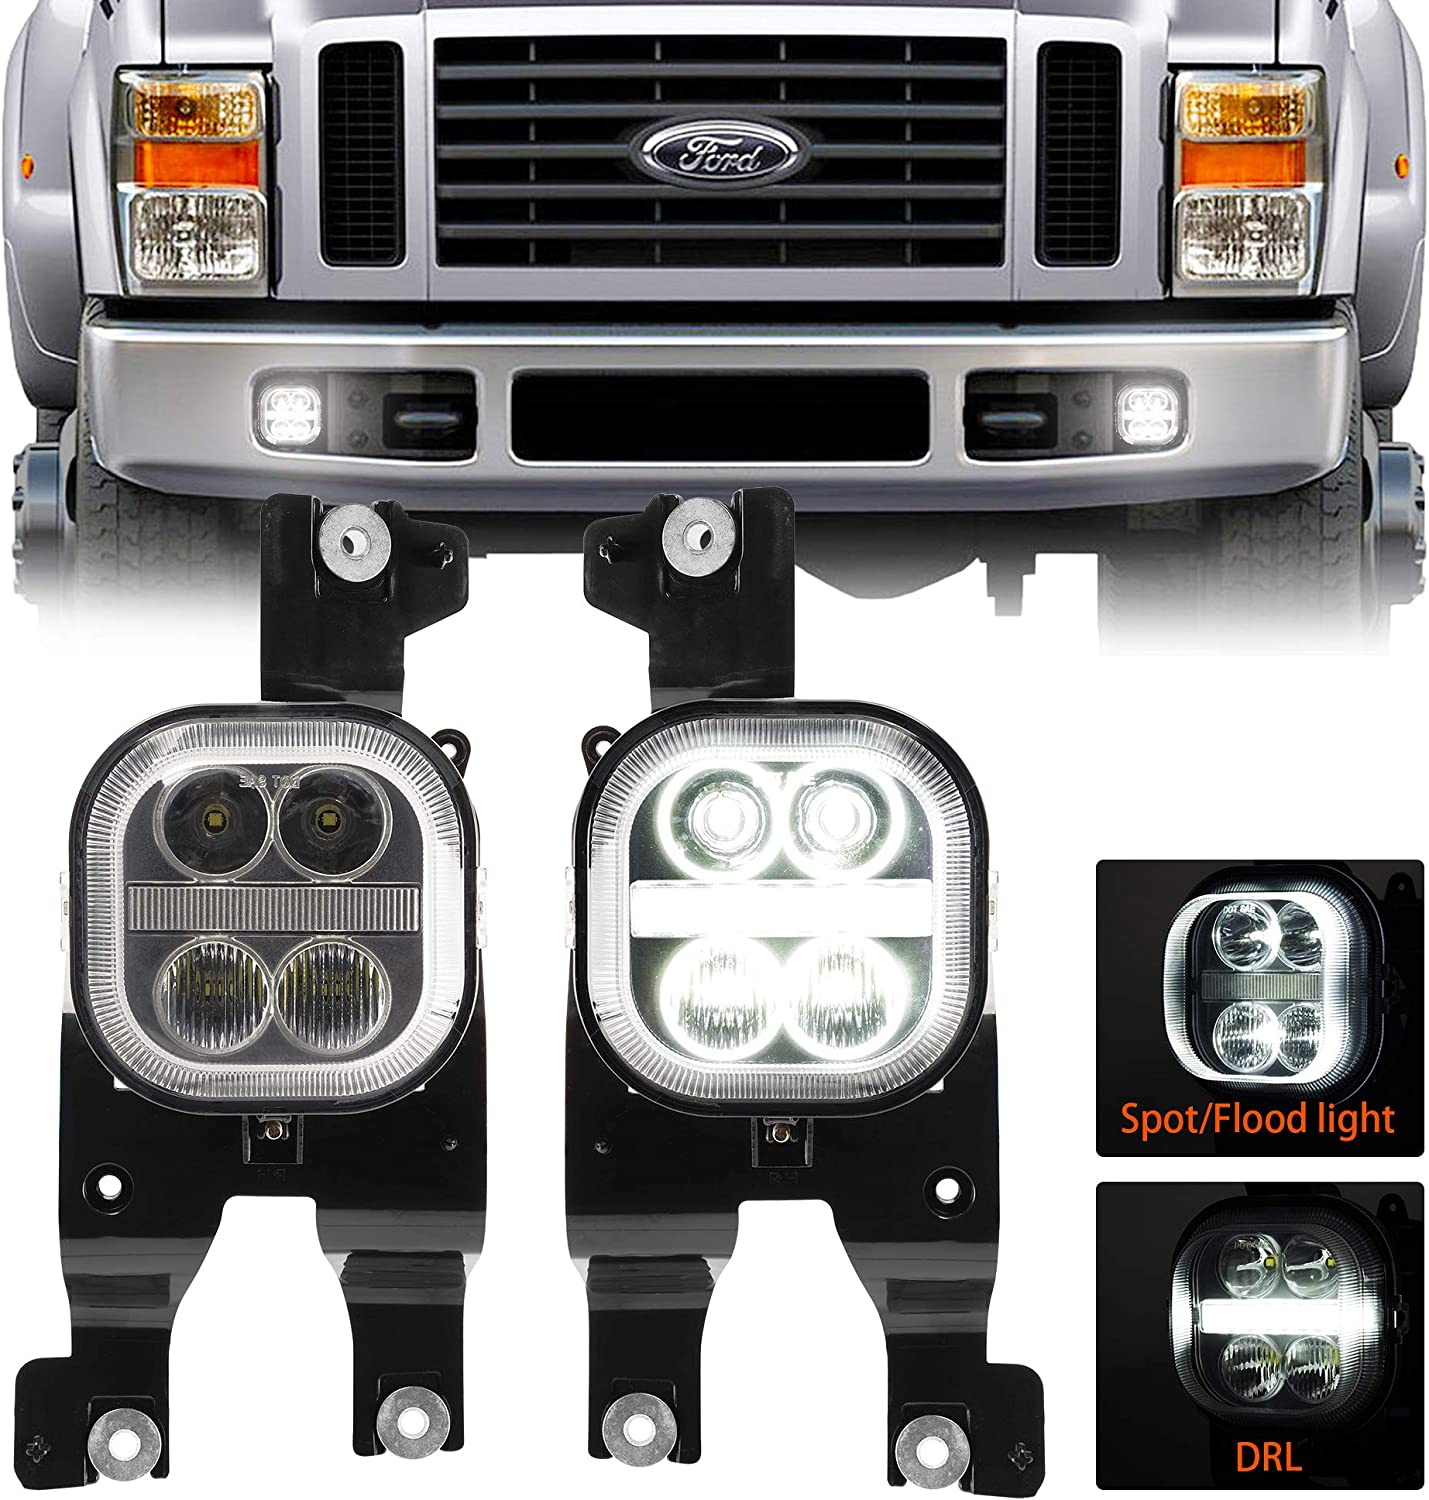 LED Fog Light Assembly with Daytime Running Lights for 2008 2009 2010 Ford F250 F350 F450 F550 Bumper Driving Fog Lamp Kit Plug /& Play